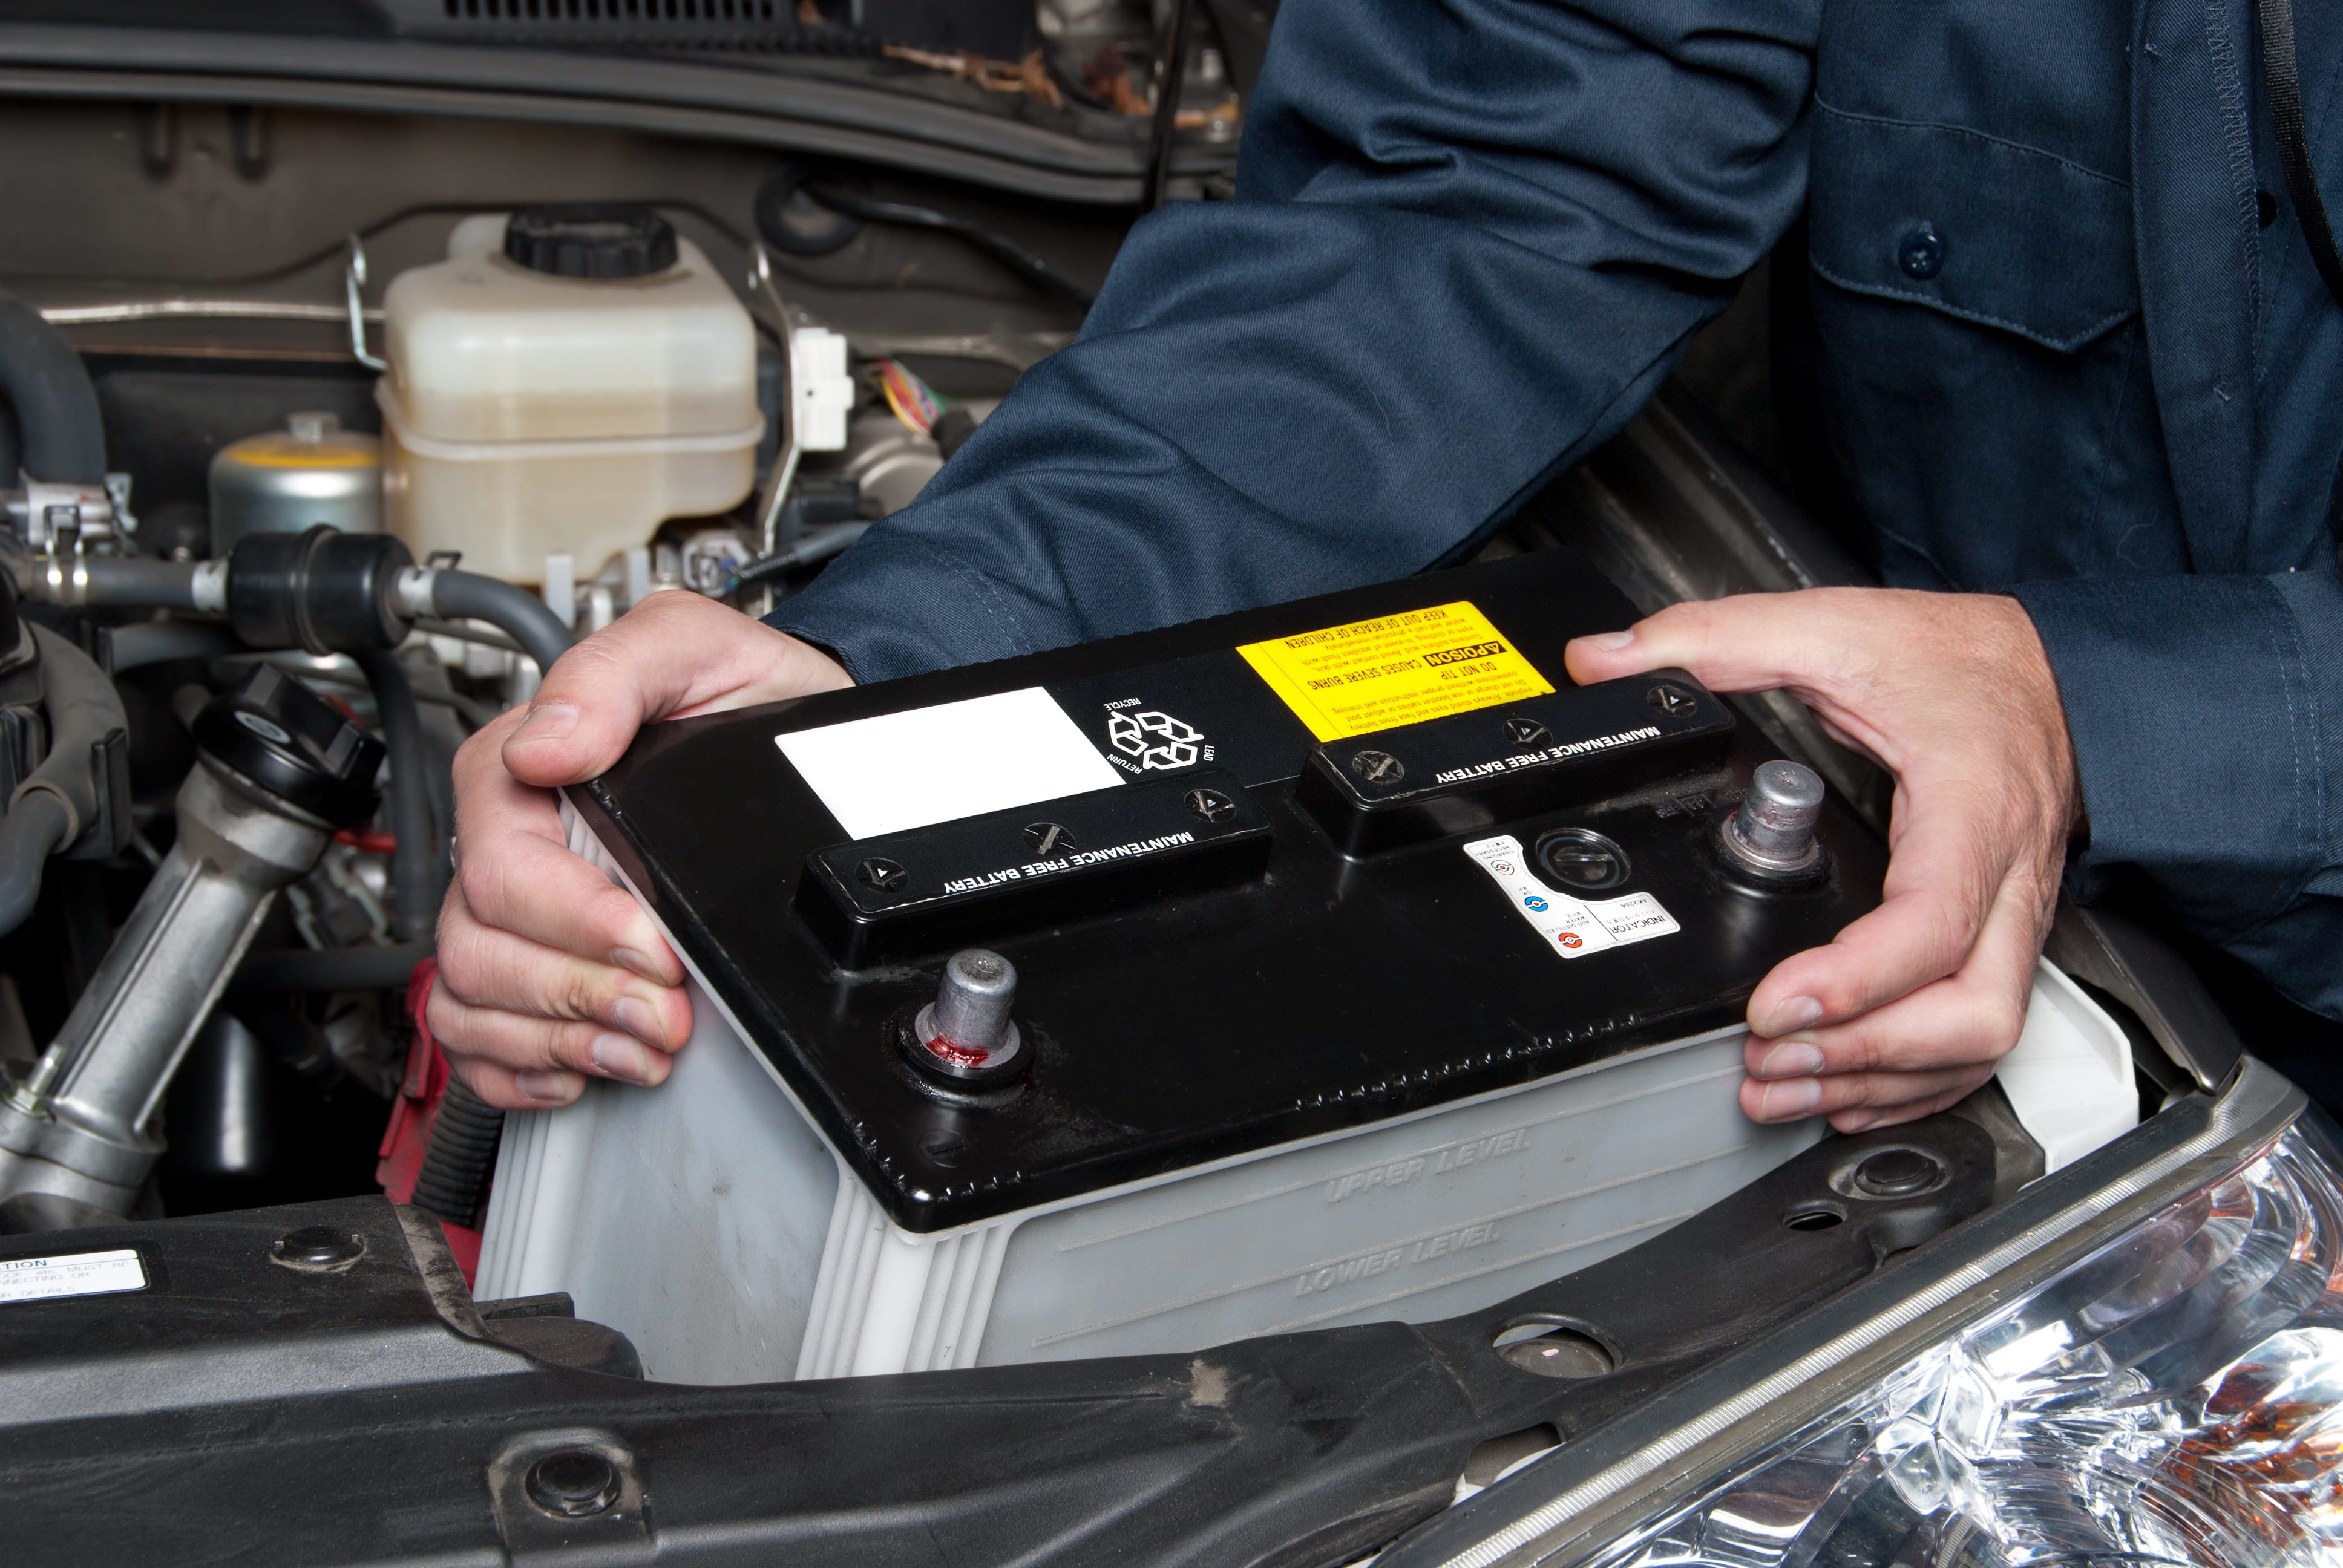 How To Fit A Car Battery Help Advice Centre Rac Shop Geo Metro Wiring Harness Connector Meanings Gone Are The Days Of One Size Fits All Todays Vehicles And Engines Include Some Most Advanced Features Meaning That They Demand So